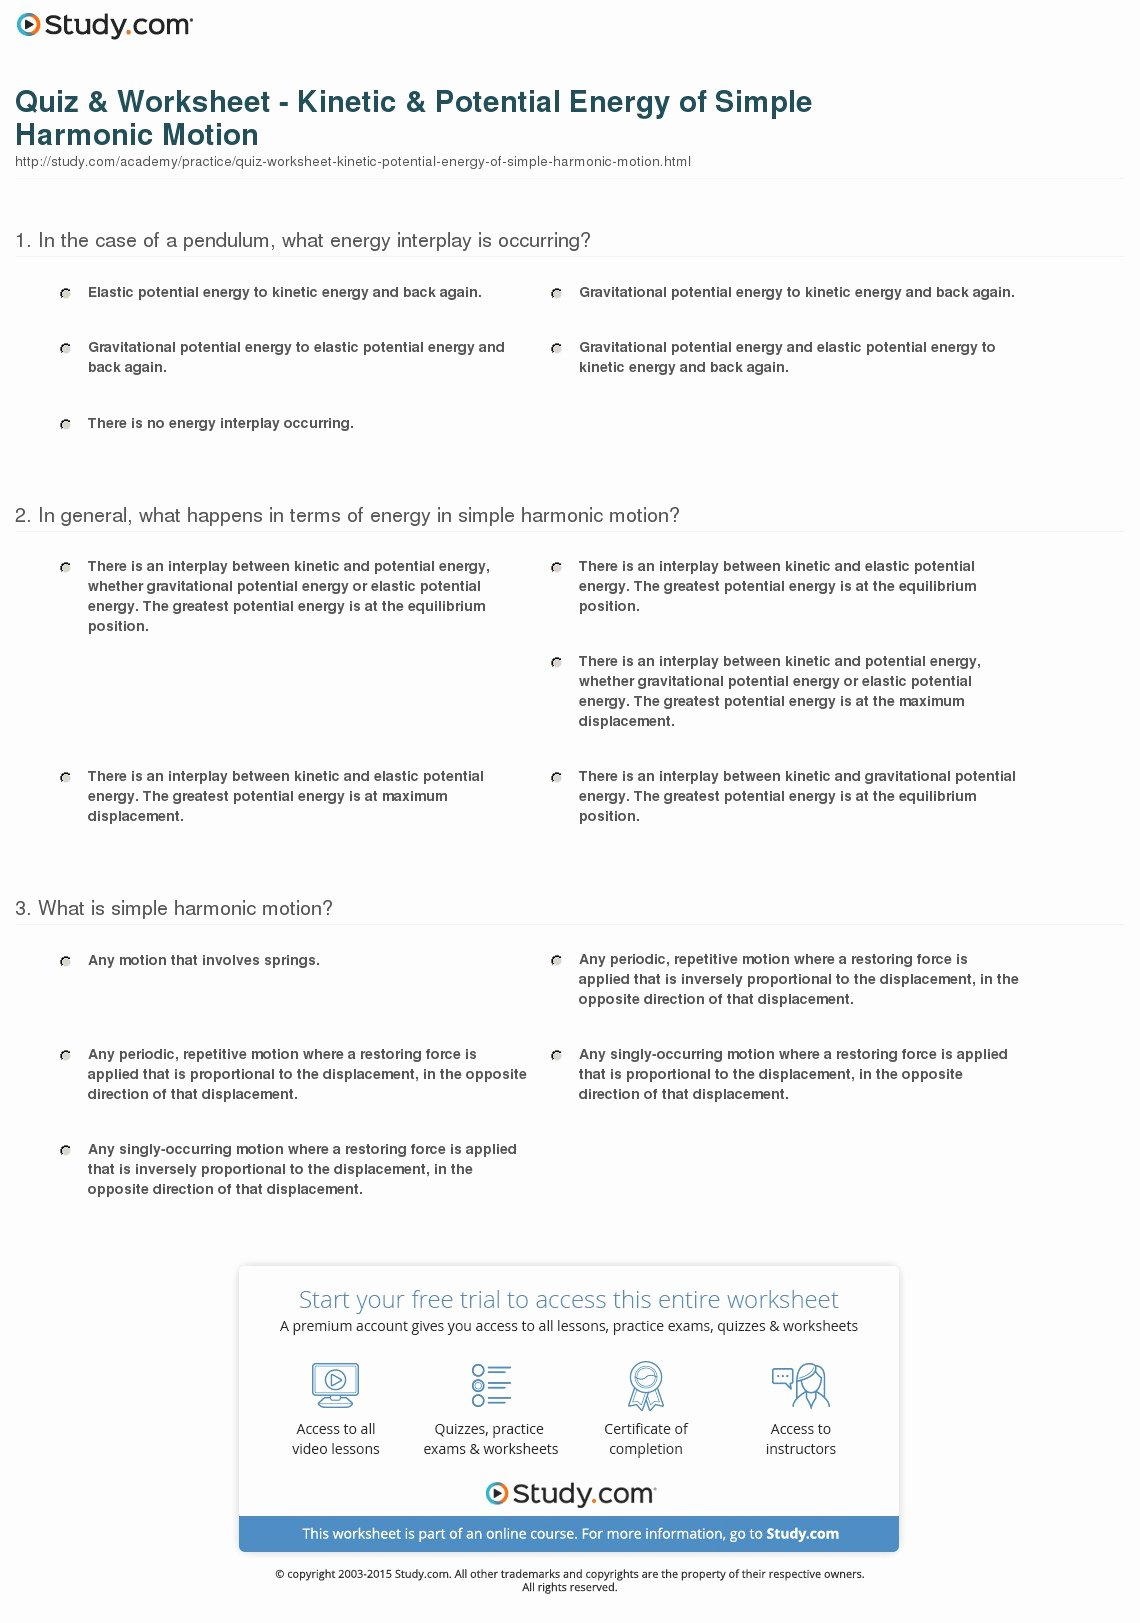 Potential and Kinetic Energy Worksheet Luxury Quiz & Worksheet Kinetic & Potential Energy Of Simple